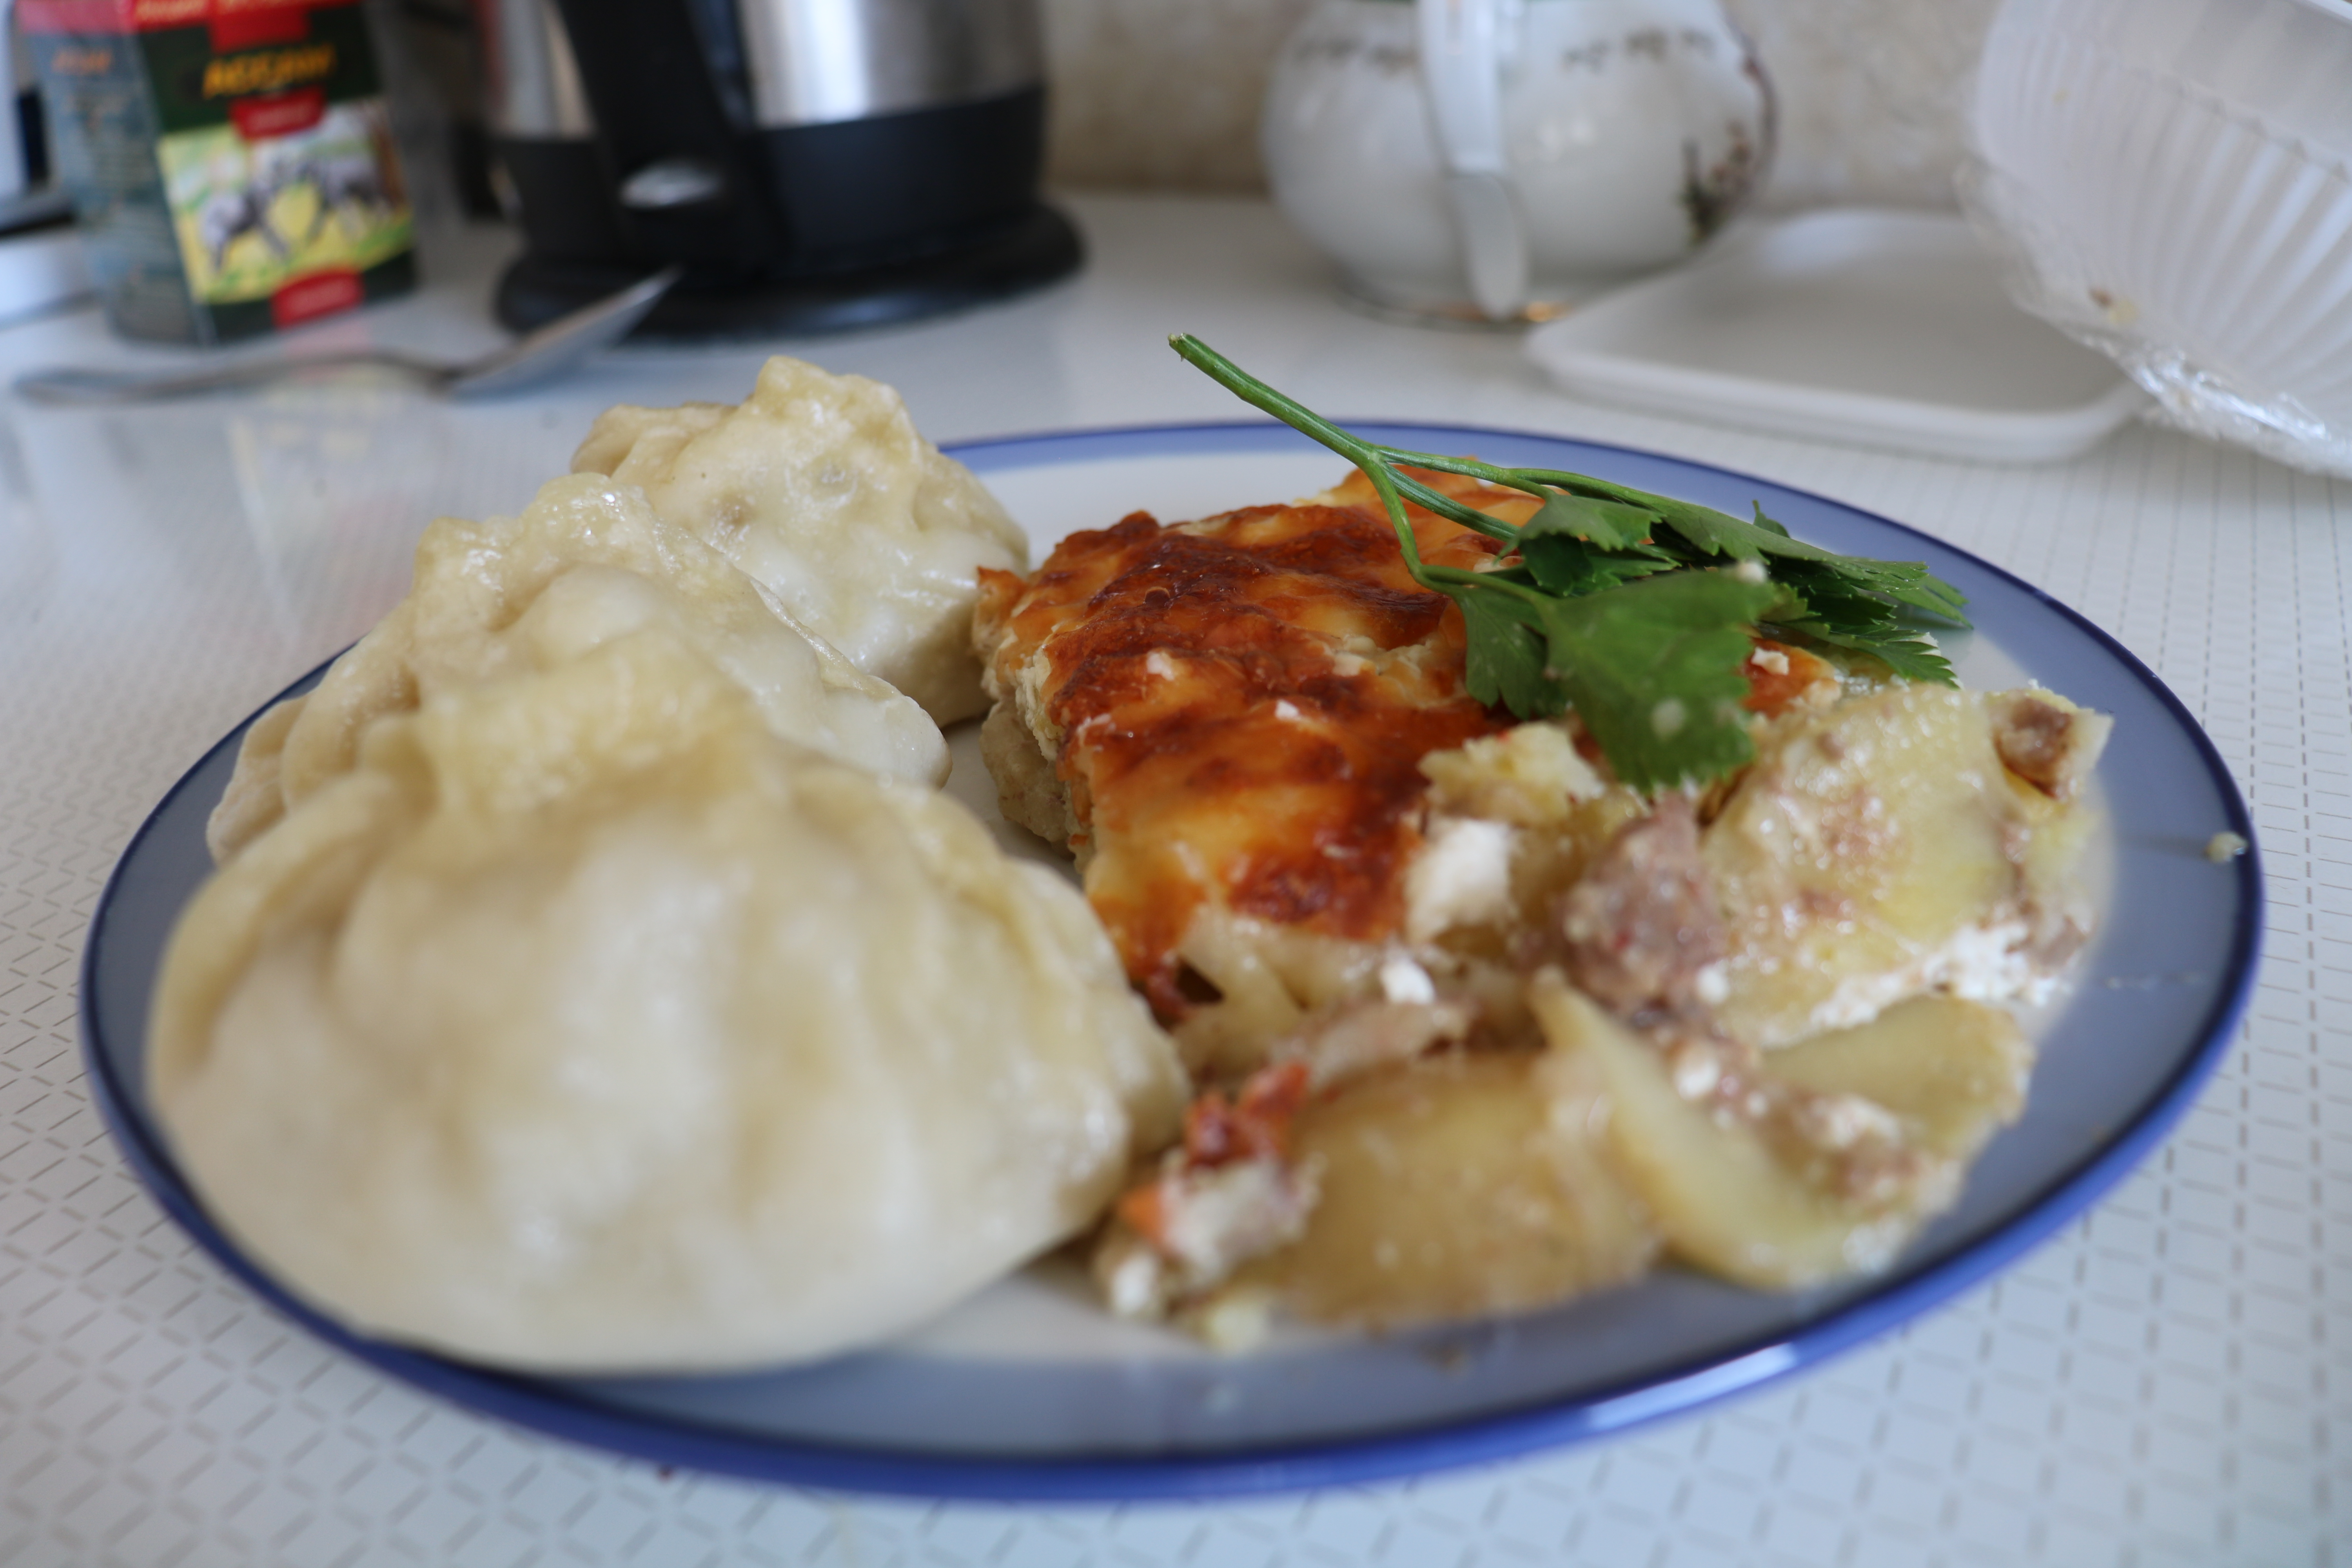 Manti (meat n' potato dumplings) and some form of casserole.